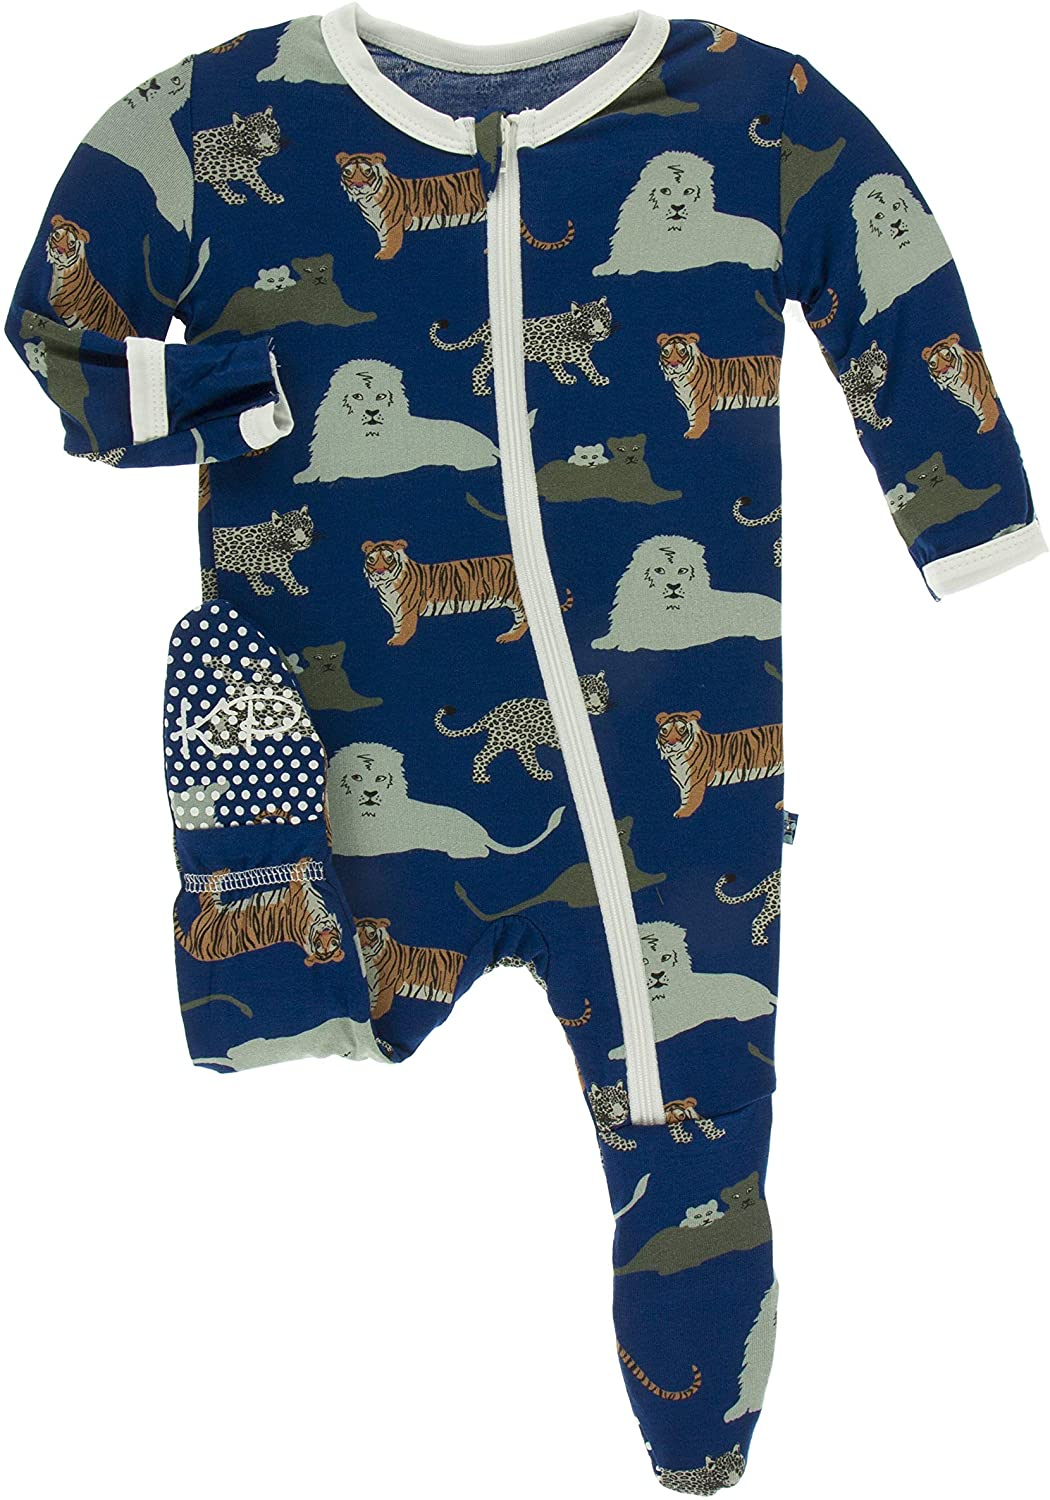 KicKee Pants Print Footie with Zipper (Flag Blue Big Cats - 6-9 Months)